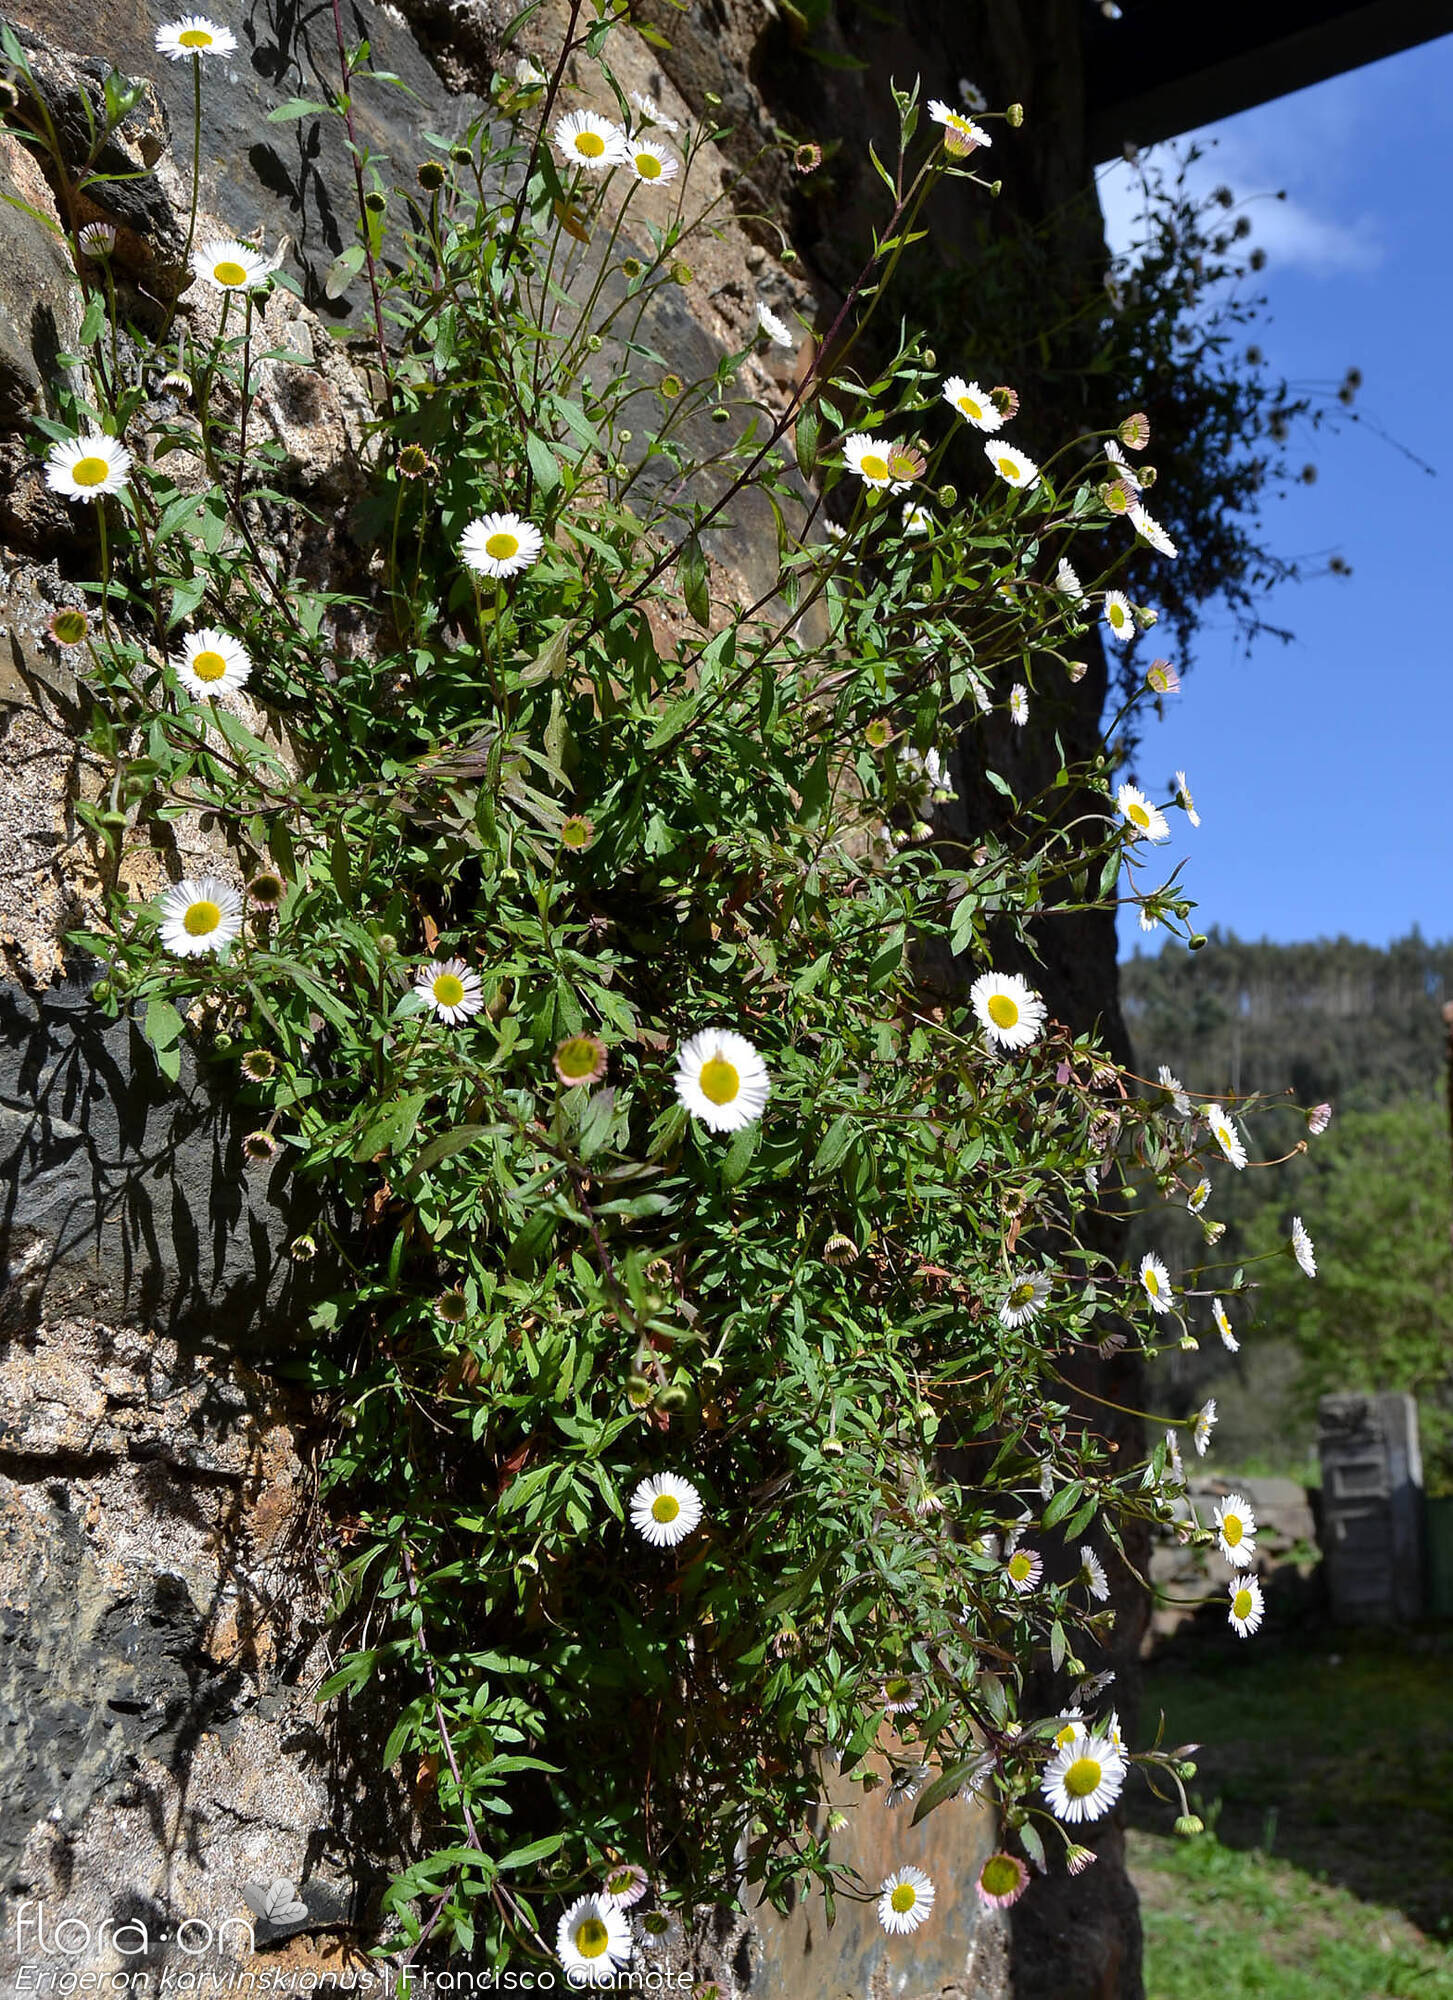 Erigeron karvinskianus - Hábito | Francisco Clamote; CC BY-NC 4.0